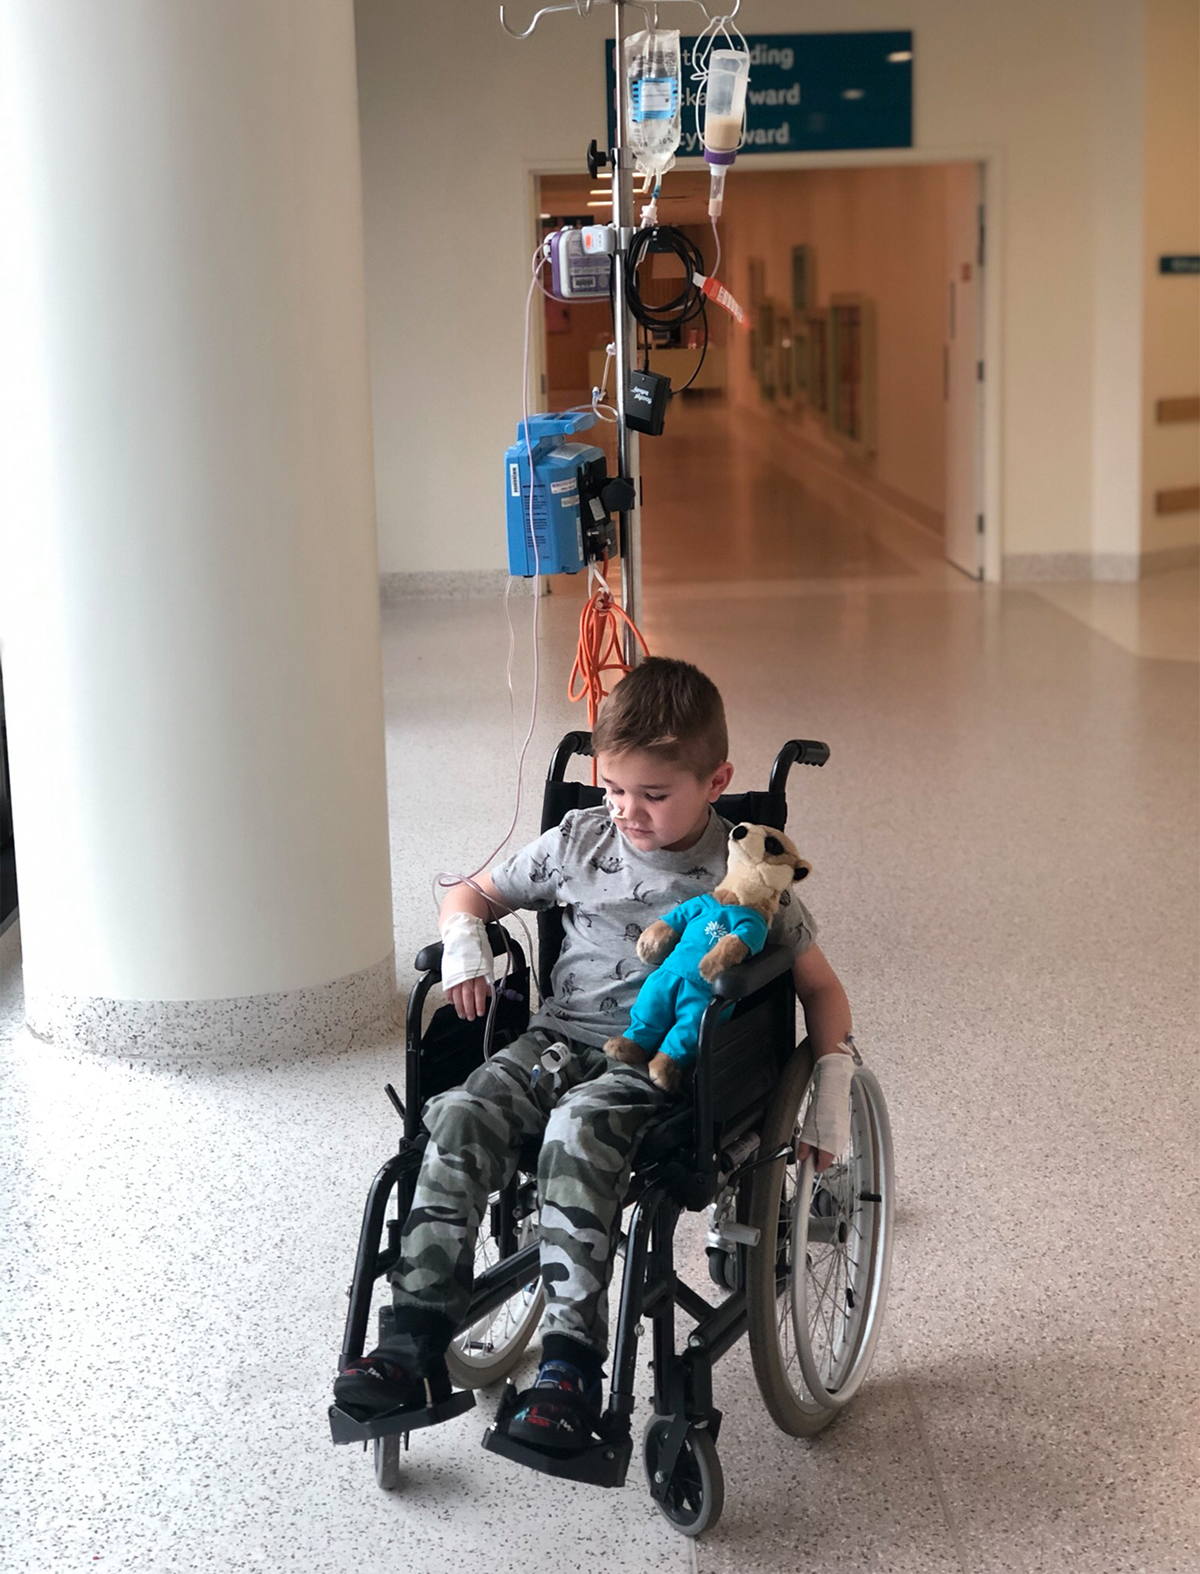 Chayse in wheelchair looking down